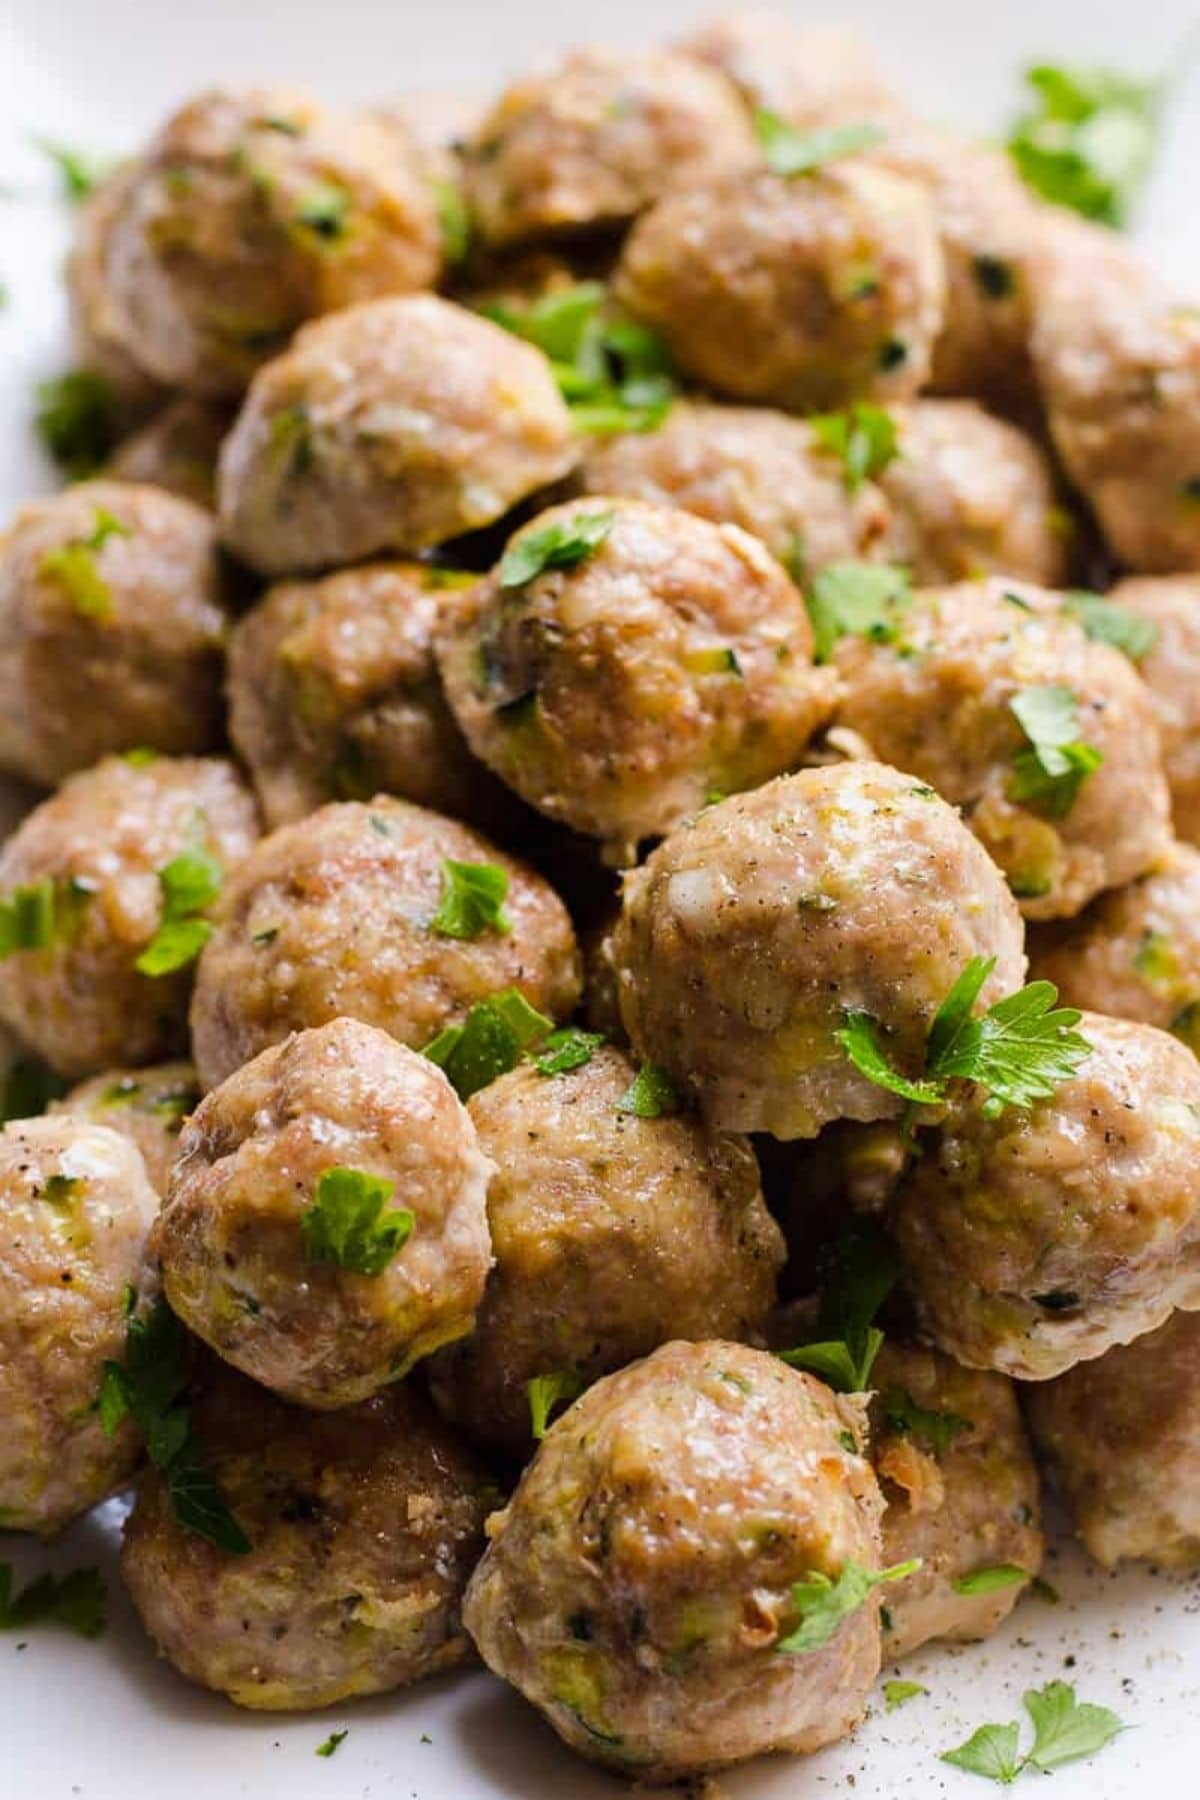 Meatballs on plate with parsley